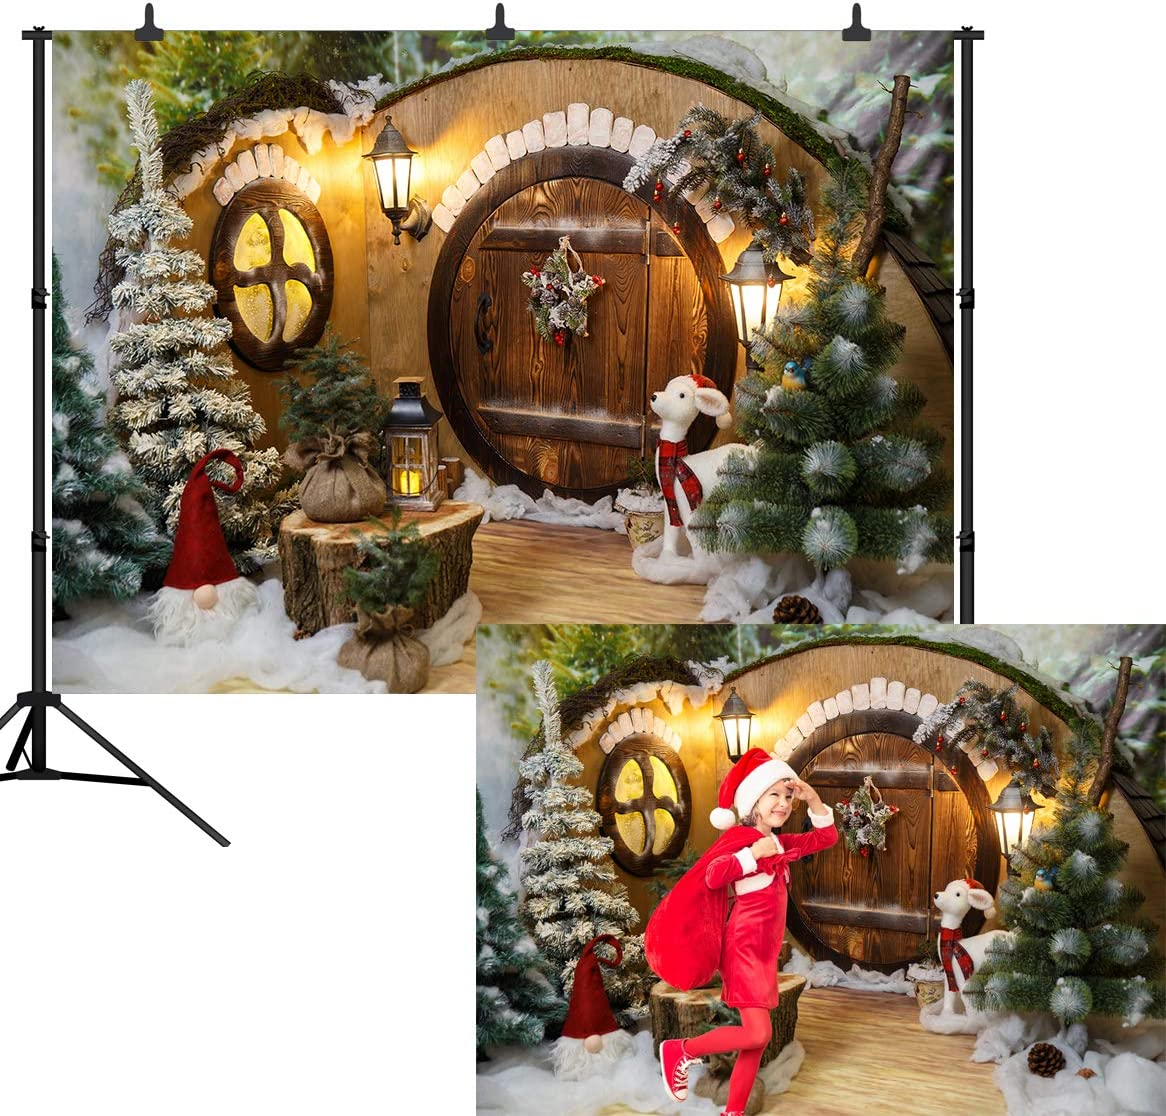 DePhoto 10X8FT Christmas Winter Backdrop Fairy Tale Wooden House Star Lights Decorations Christmas Tree Gifts Photography Seamless Vinyl Photo Background Studio Prop PGT490C